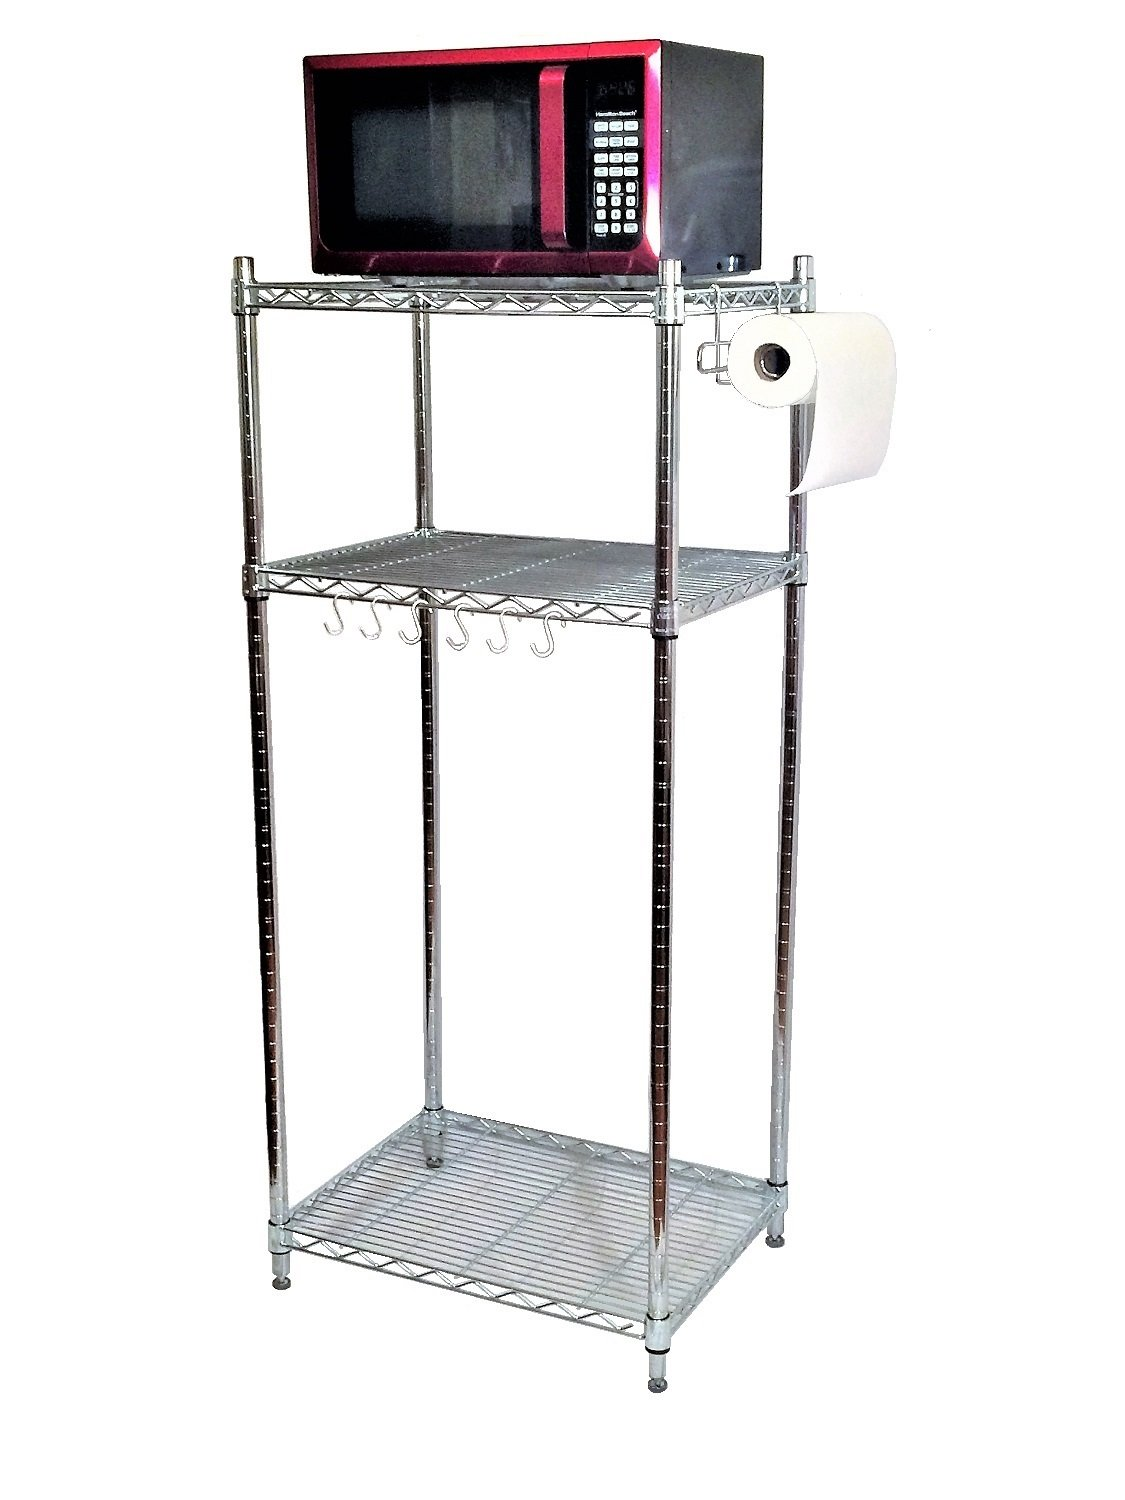 Mini Fridge Stand Storage Cabinet 3 Shelves Microwave Cart Stand Chrome Shelving Unit College Dorm Office Break Room Small Apartment Kitchen Shelves Refrigerator Base Man Cave Decor Furniture